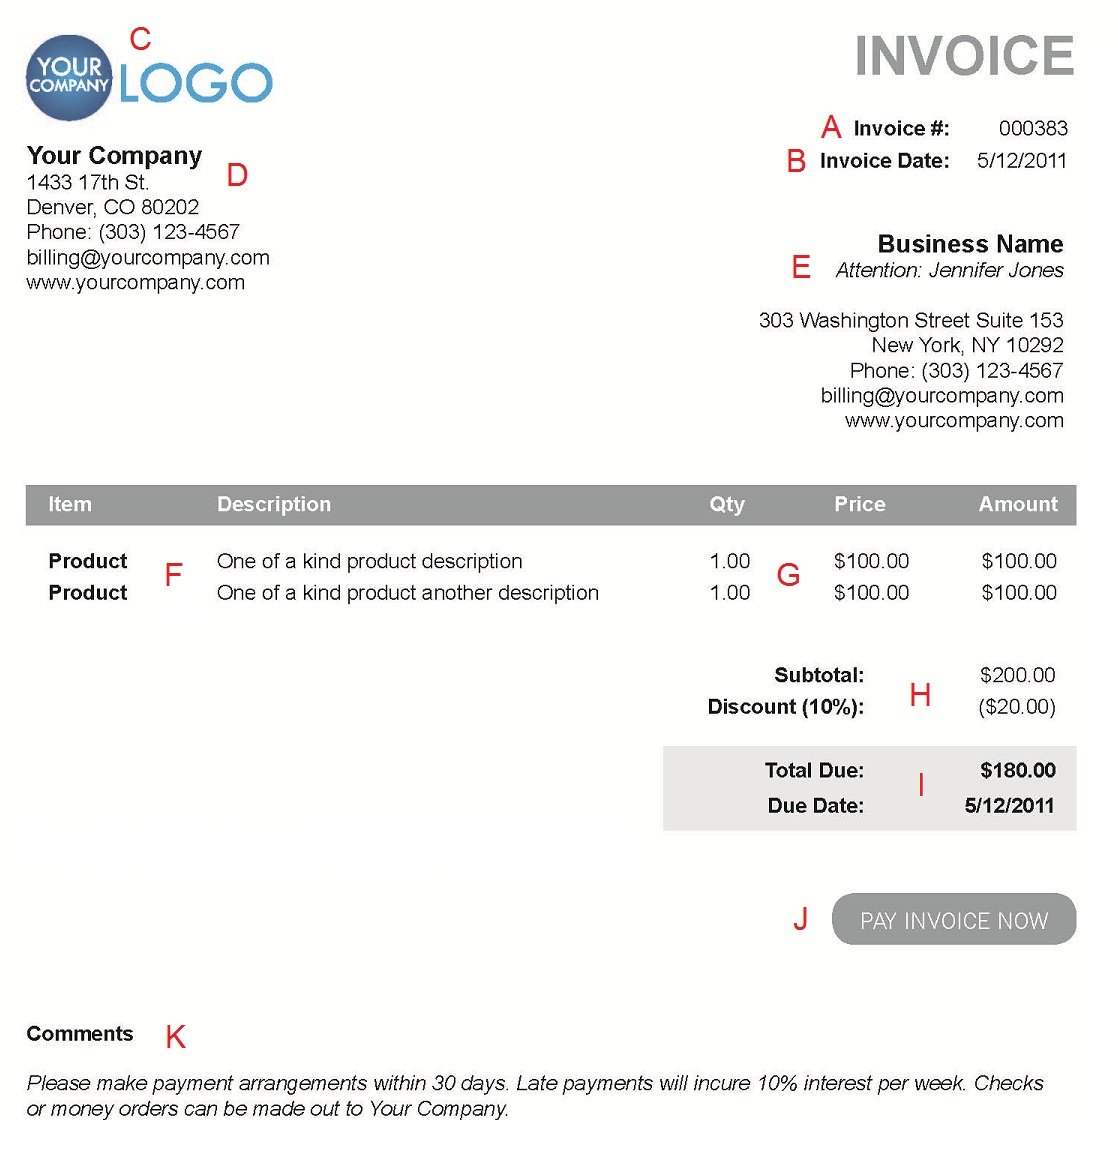 Bringjacobolivierhomeus  Gorgeous The  Different Sections Of An Electronic Payment Invoice With Glamorous A  With Endearing Photography Invoice Template Free Also Commercial Invoice Template Dhl In Addition Car Service Invoice Template And Template Of Invoice For Services As Well As Taxi Invoice Template Additionally Sample Invoices For Services Rendered From Paysimplecom With Bringjacobolivierhomeus  Glamorous The  Different Sections Of An Electronic Payment Invoice With Endearing A  And Gorgeous Photography Invoice Template Free Also Commercial Invoice Template Dhl In Addition Car Service Invoice Template From Paysimplecom